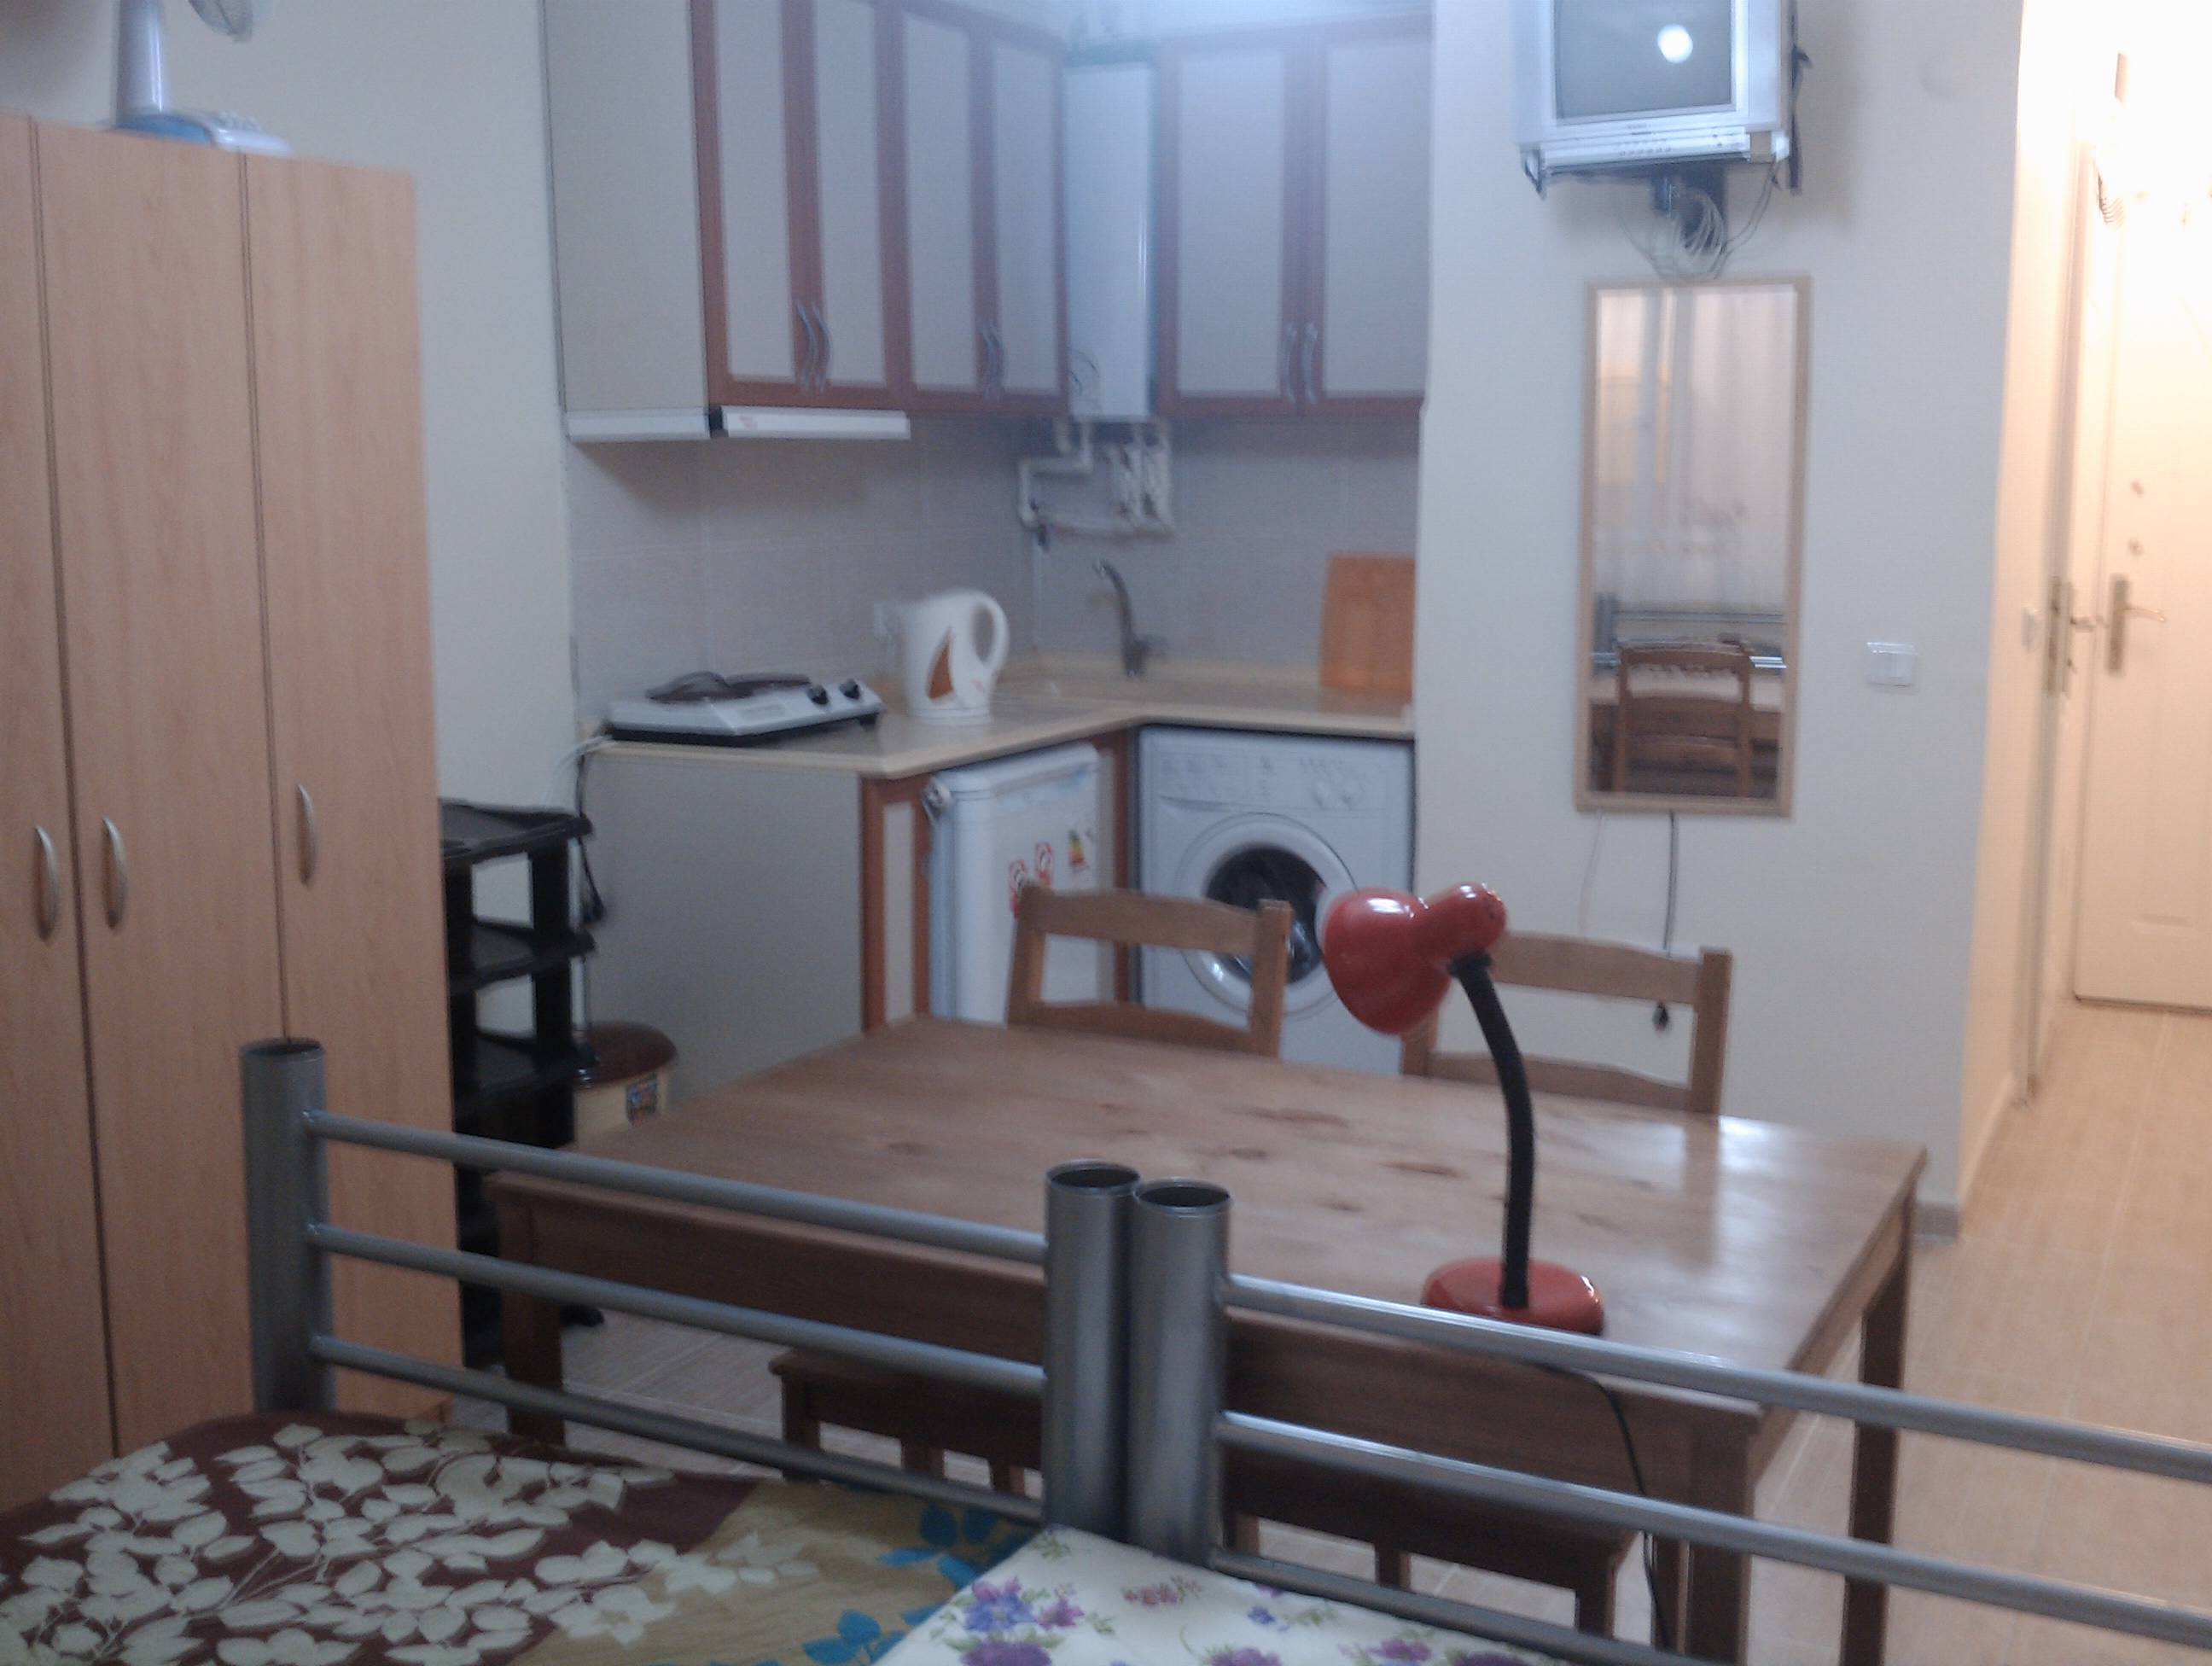 Efficiency Apartment Vs Studio 1 Room Studio Erasmus Flats Flats And Rooms In Istanbul